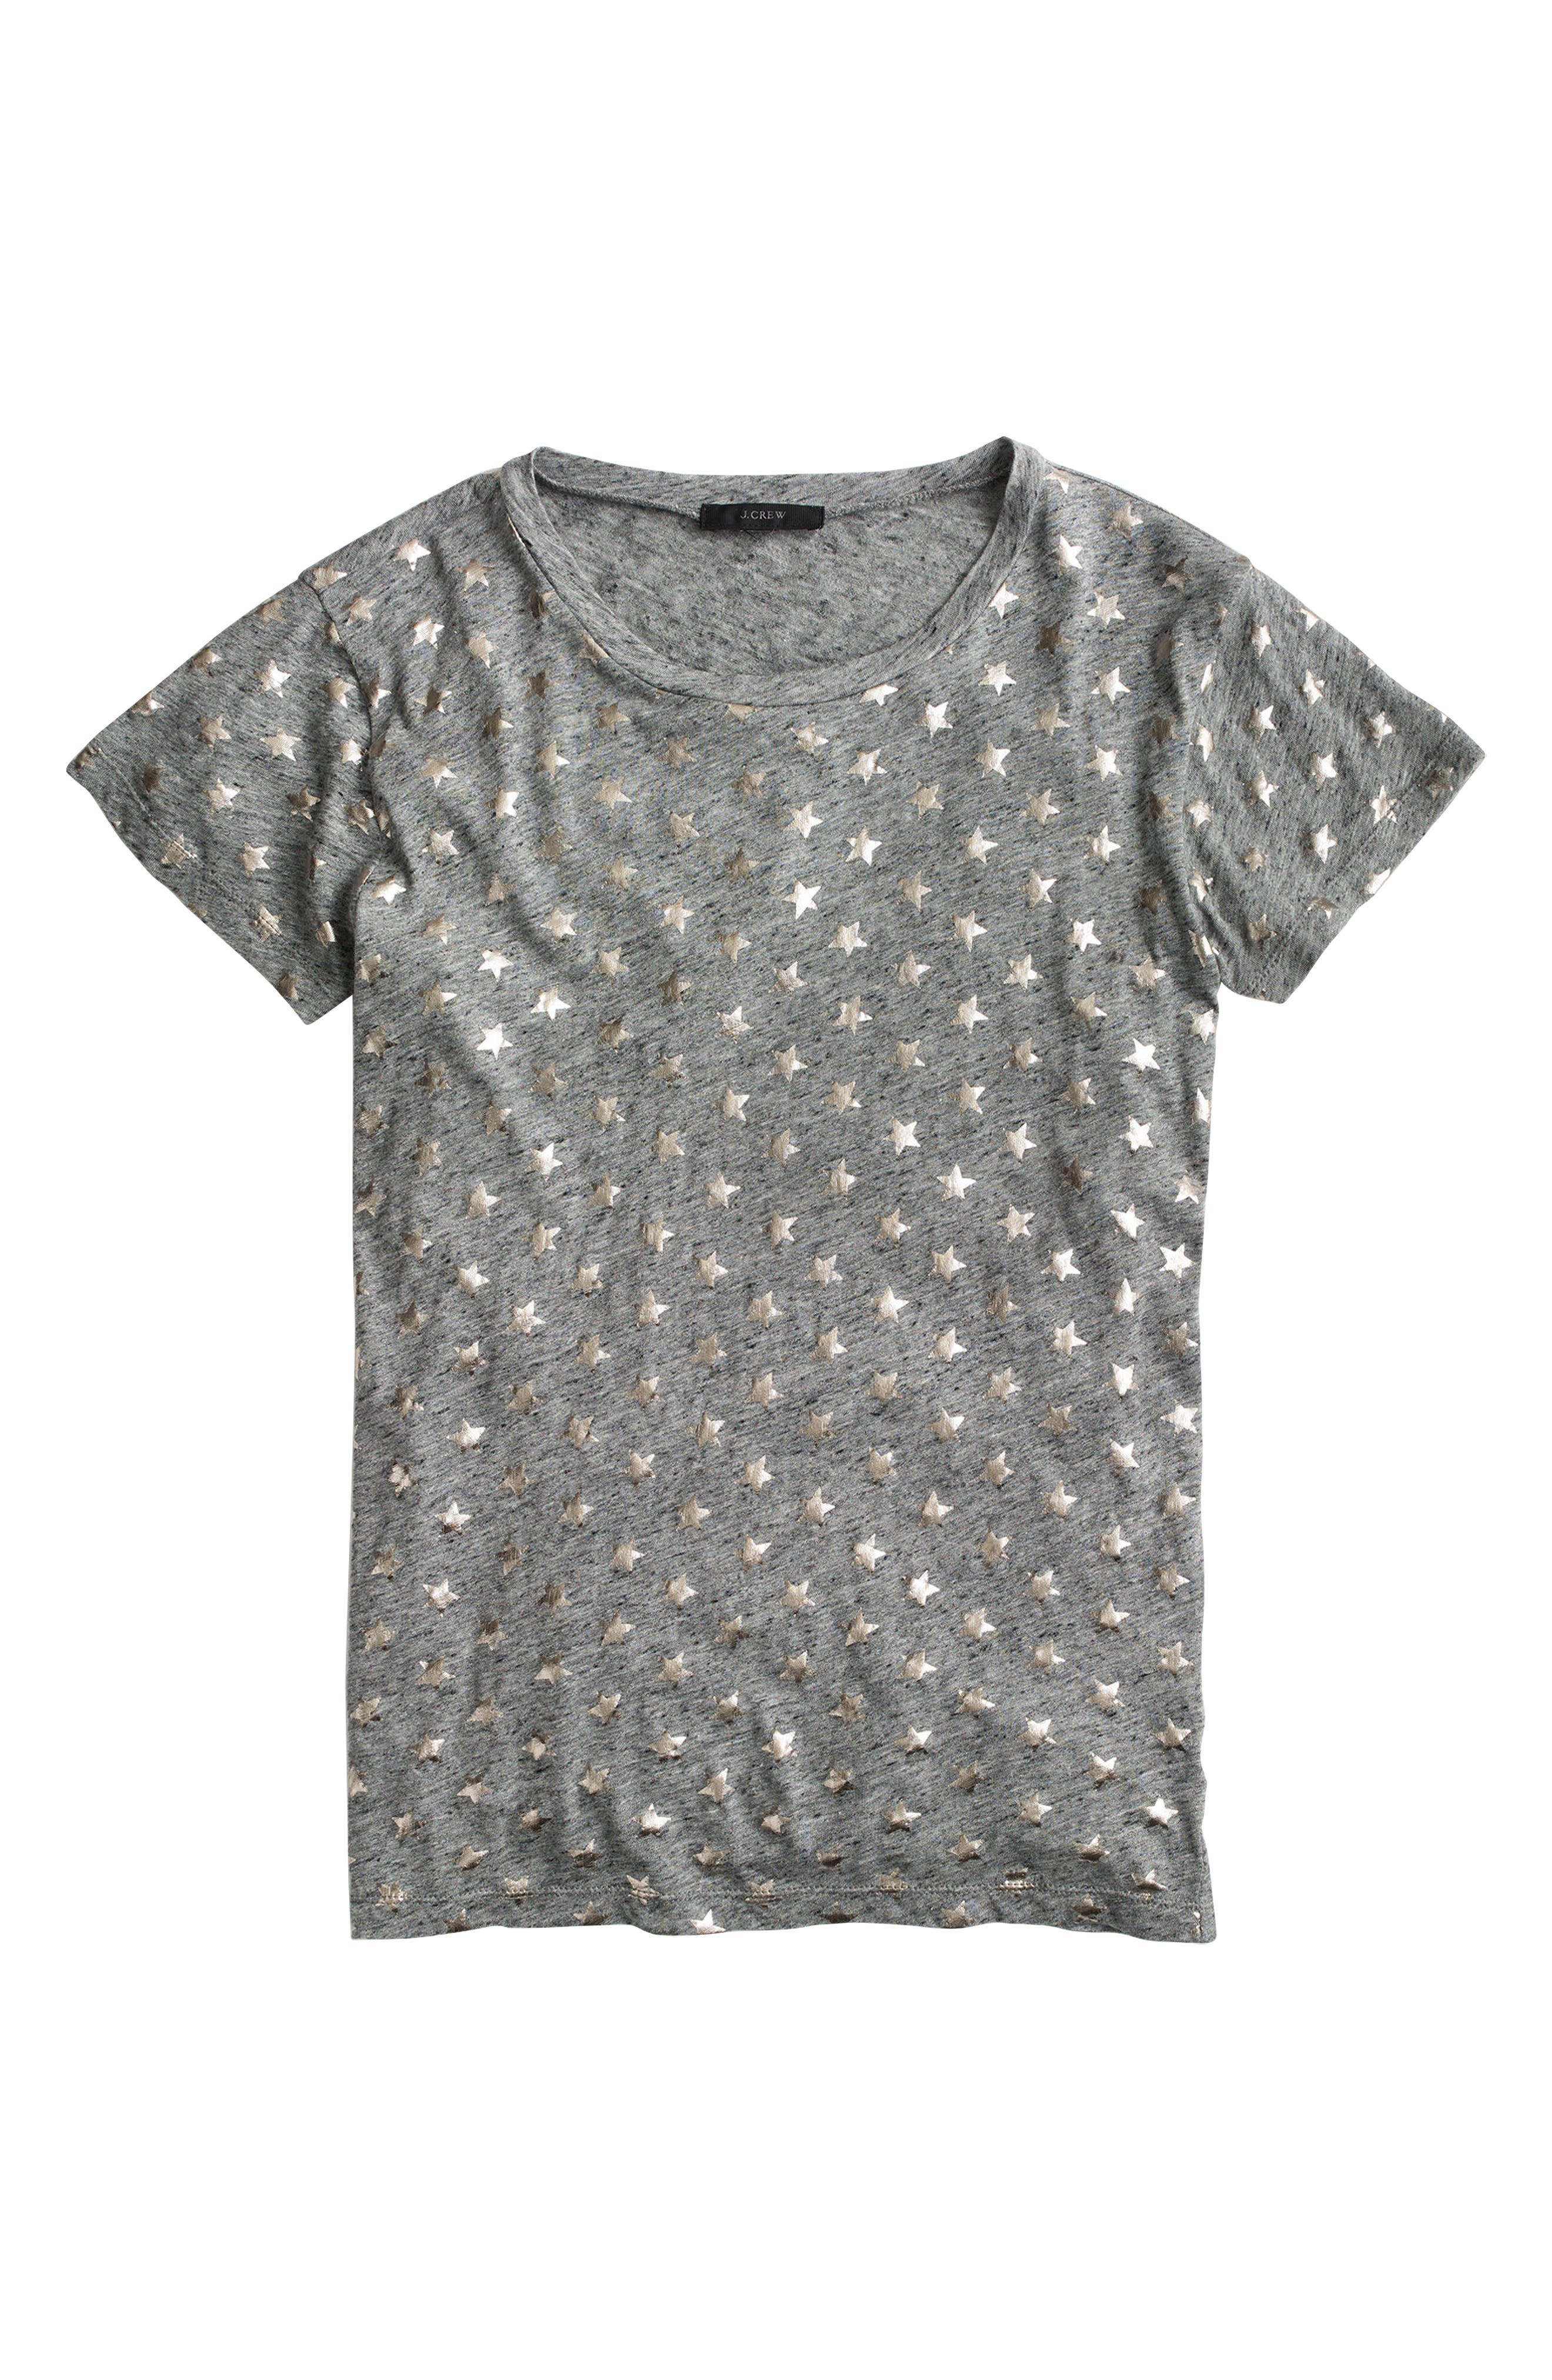 Metallic Stars Tee,                             Alternate thumbnail 3, color,                             Heather Flannel